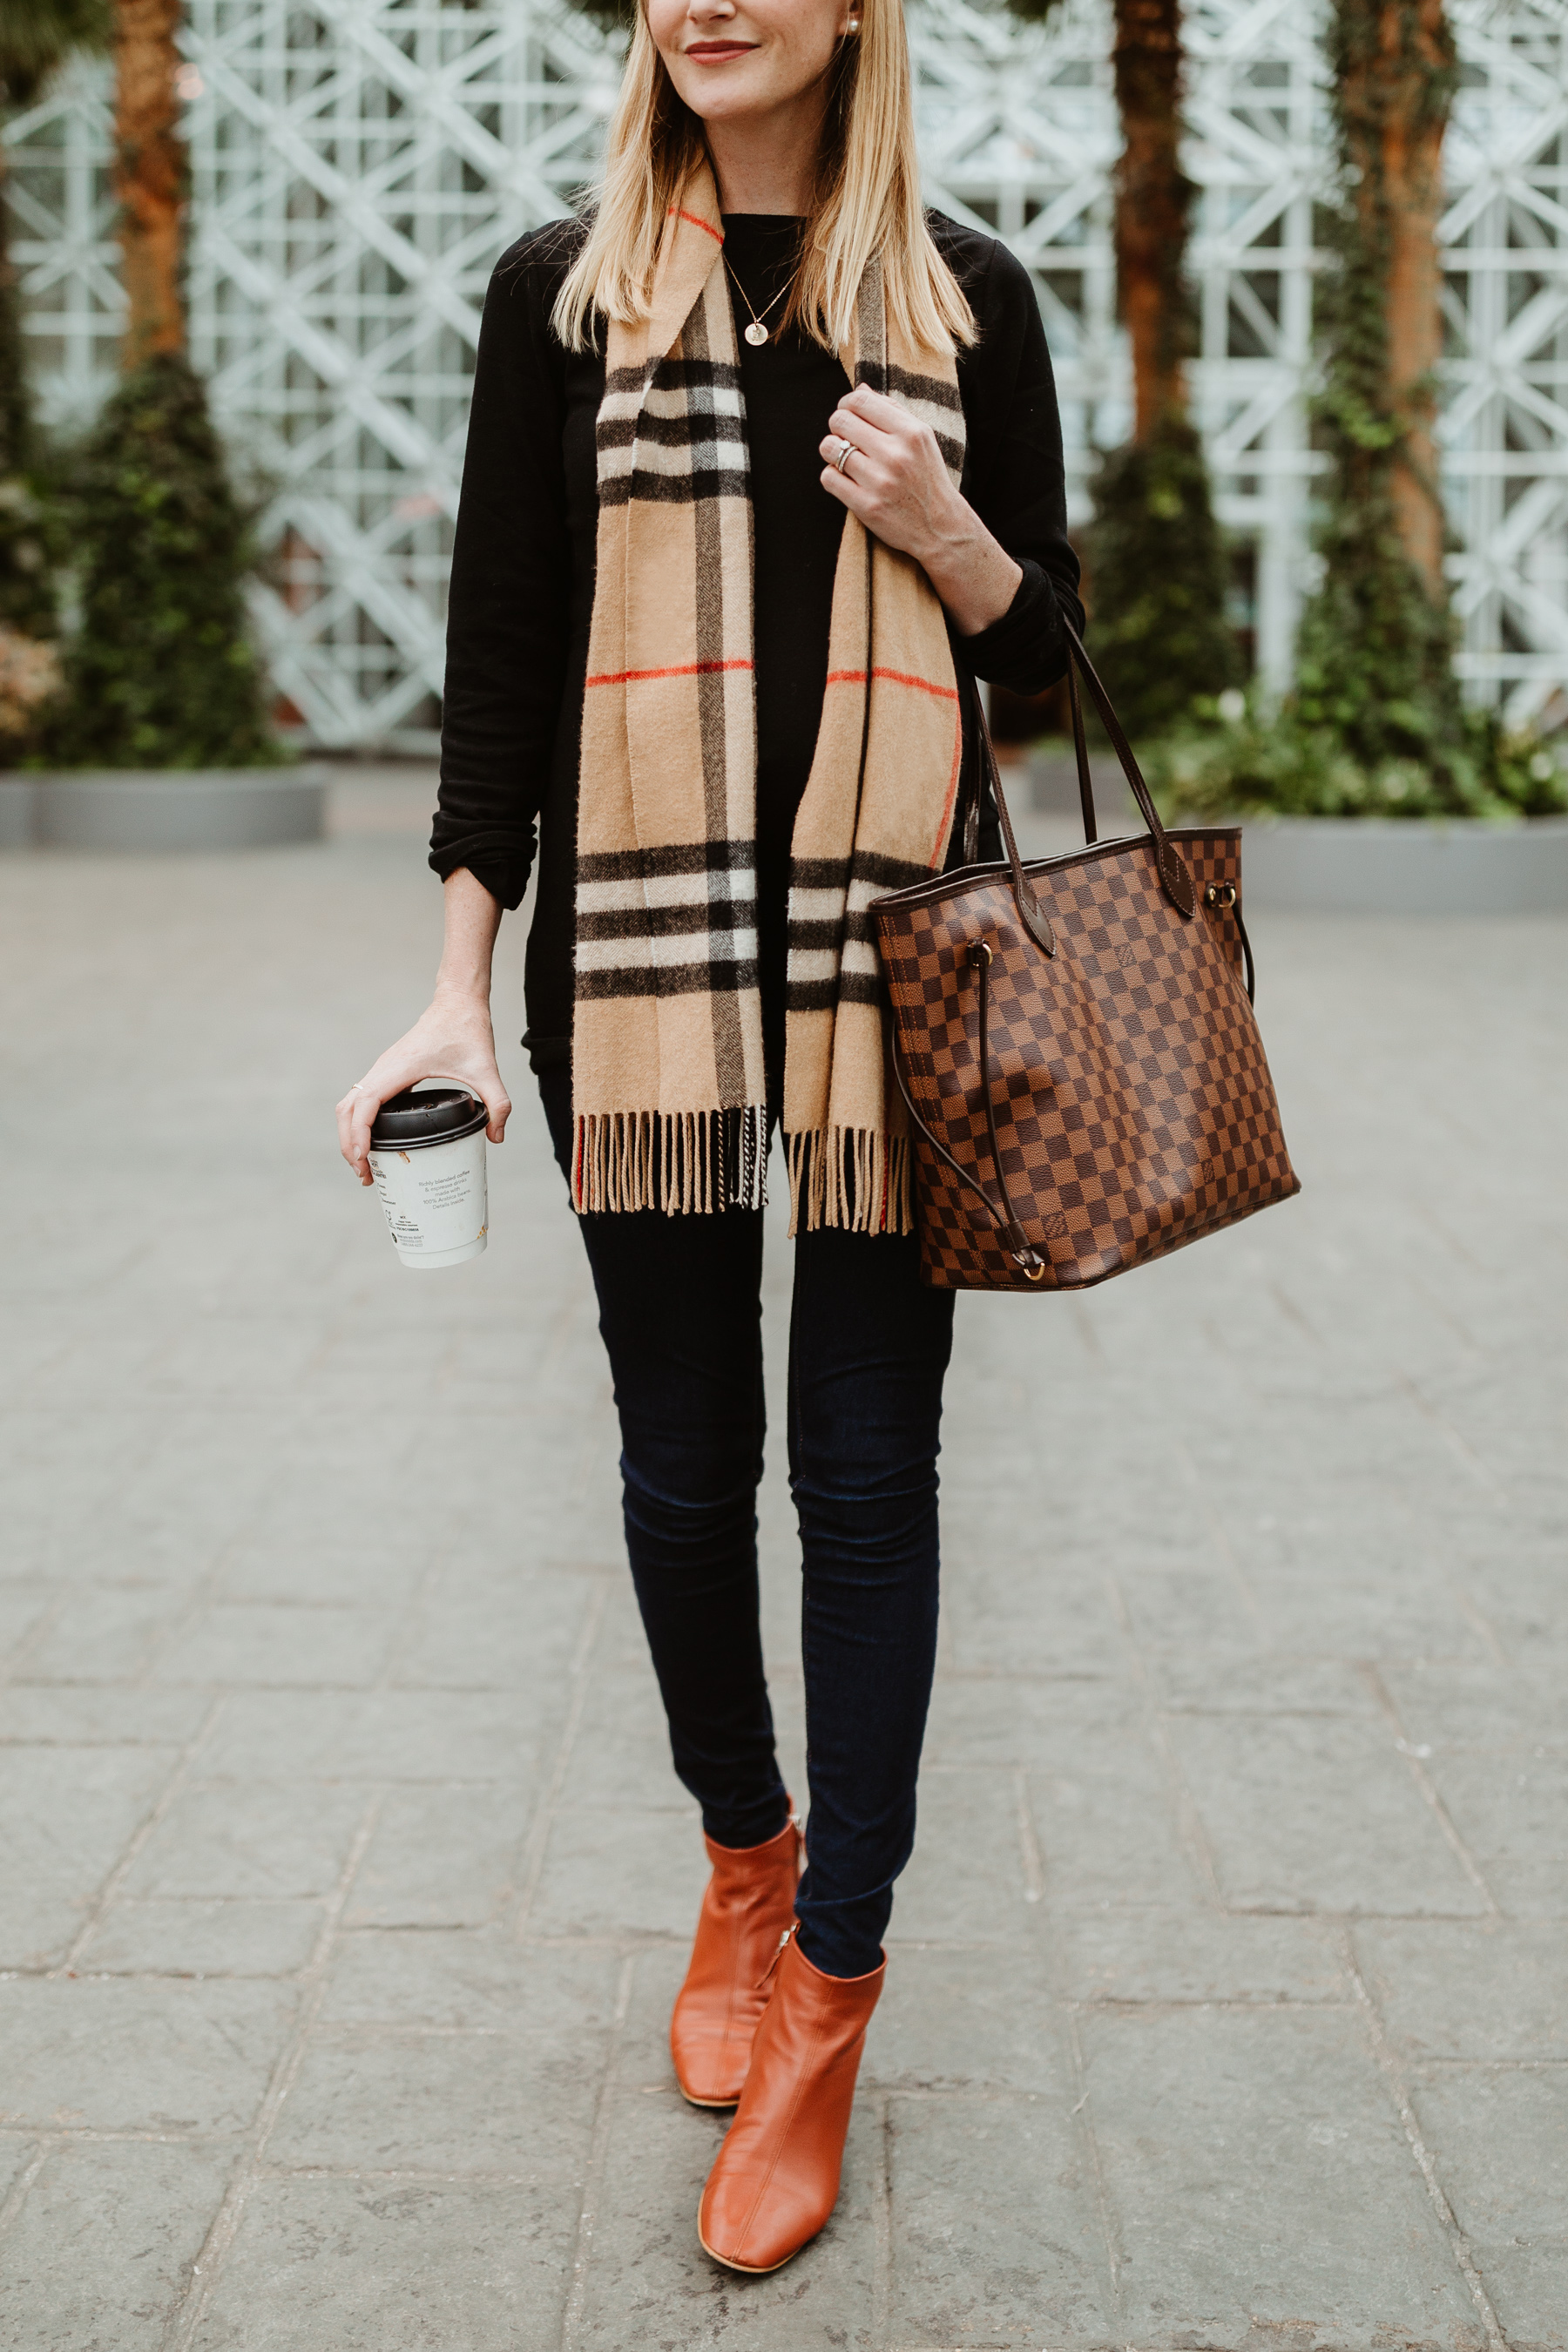 "Kelly's Outfit: Everlane Day Boot c/o / Gold Initial Necklace / Softest ""Modern Boatneck"" Tee by Gap / Louis Vuitton MM Neverfull Tote / Burberry Scarf / Old Navy Rockstar Jeans"